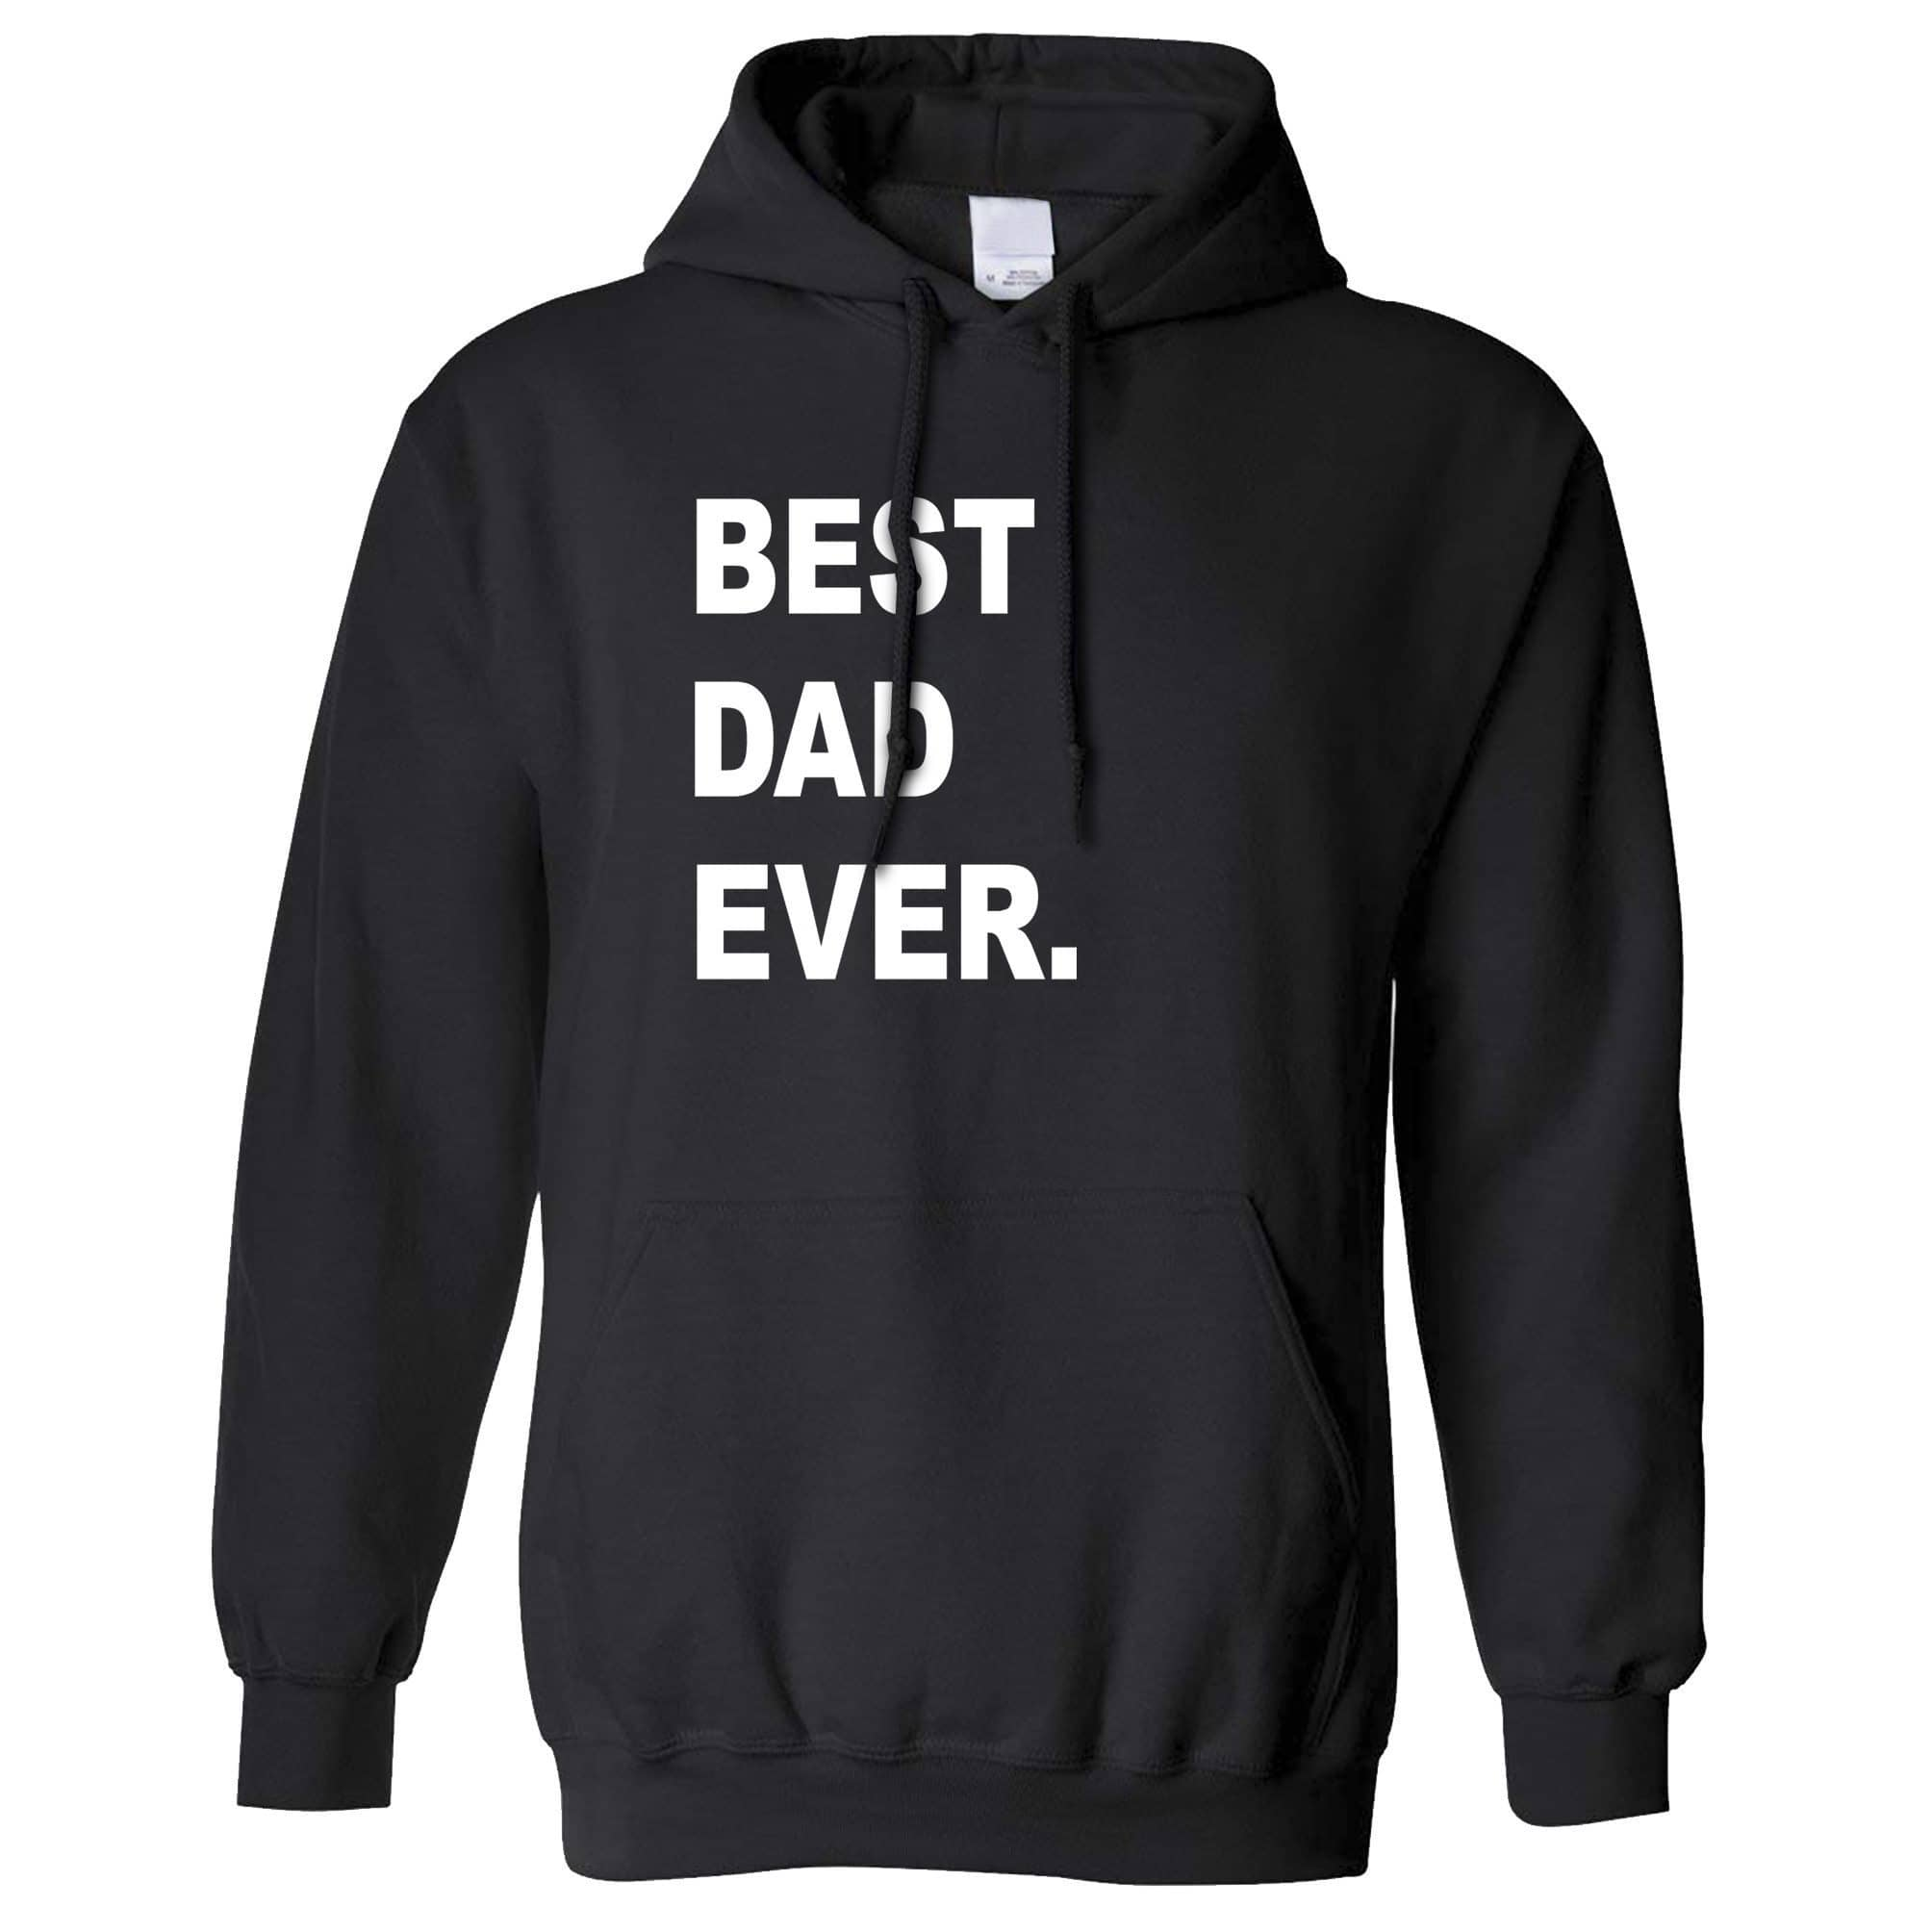 Best Dad Ever Hoodie Parent Family Slogan Hooded Jumper